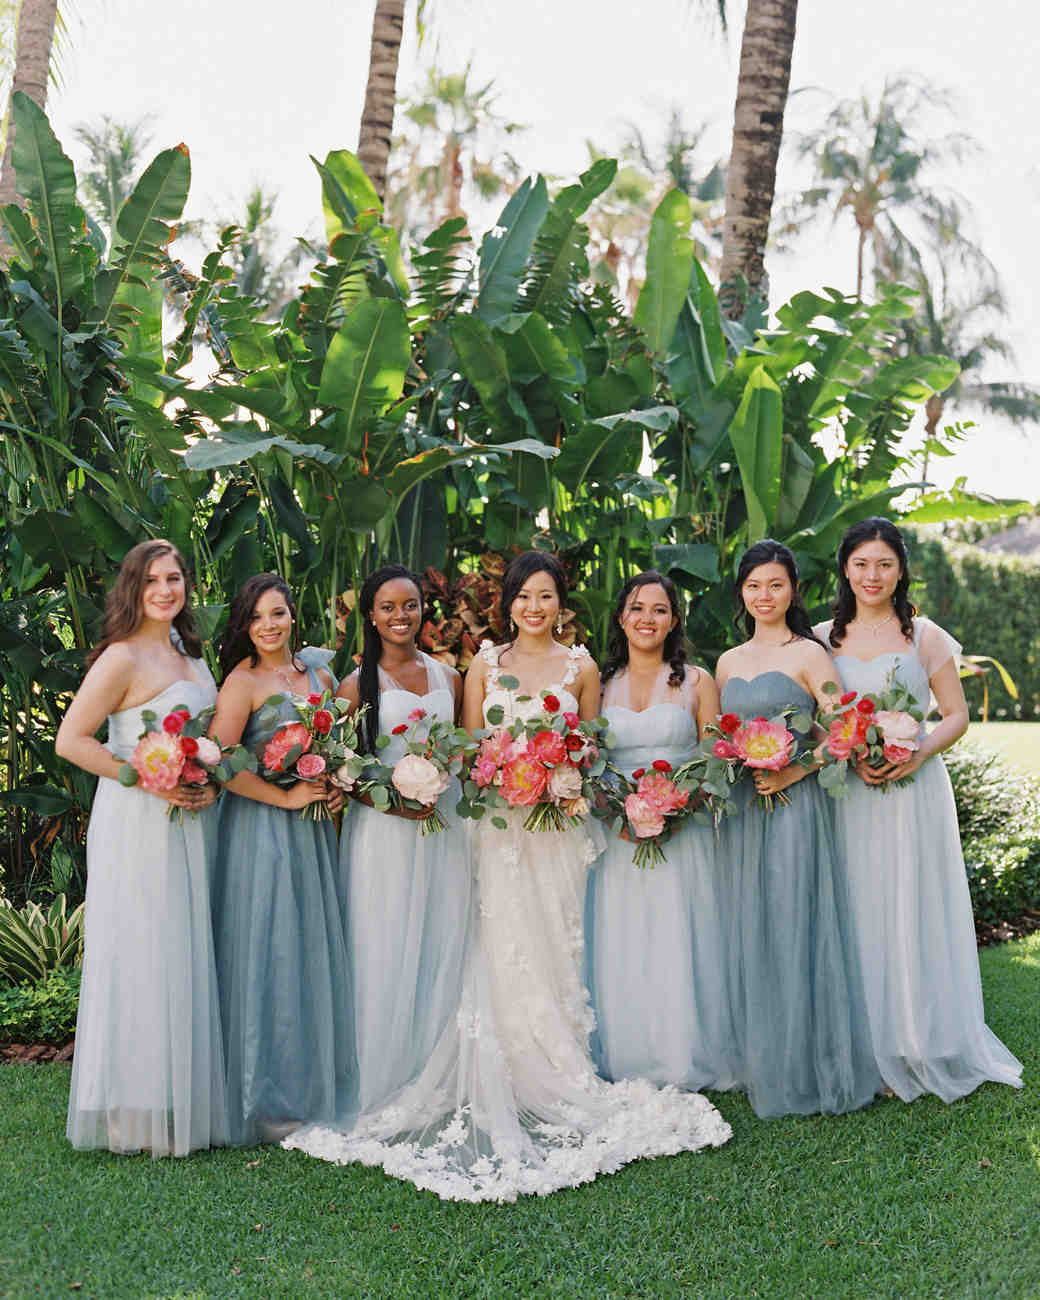 6ec1e060291 28 Mismatched Bridesmaids Dresses from Real Weddings - Best Mix and Match  Bridesmaids Dresses